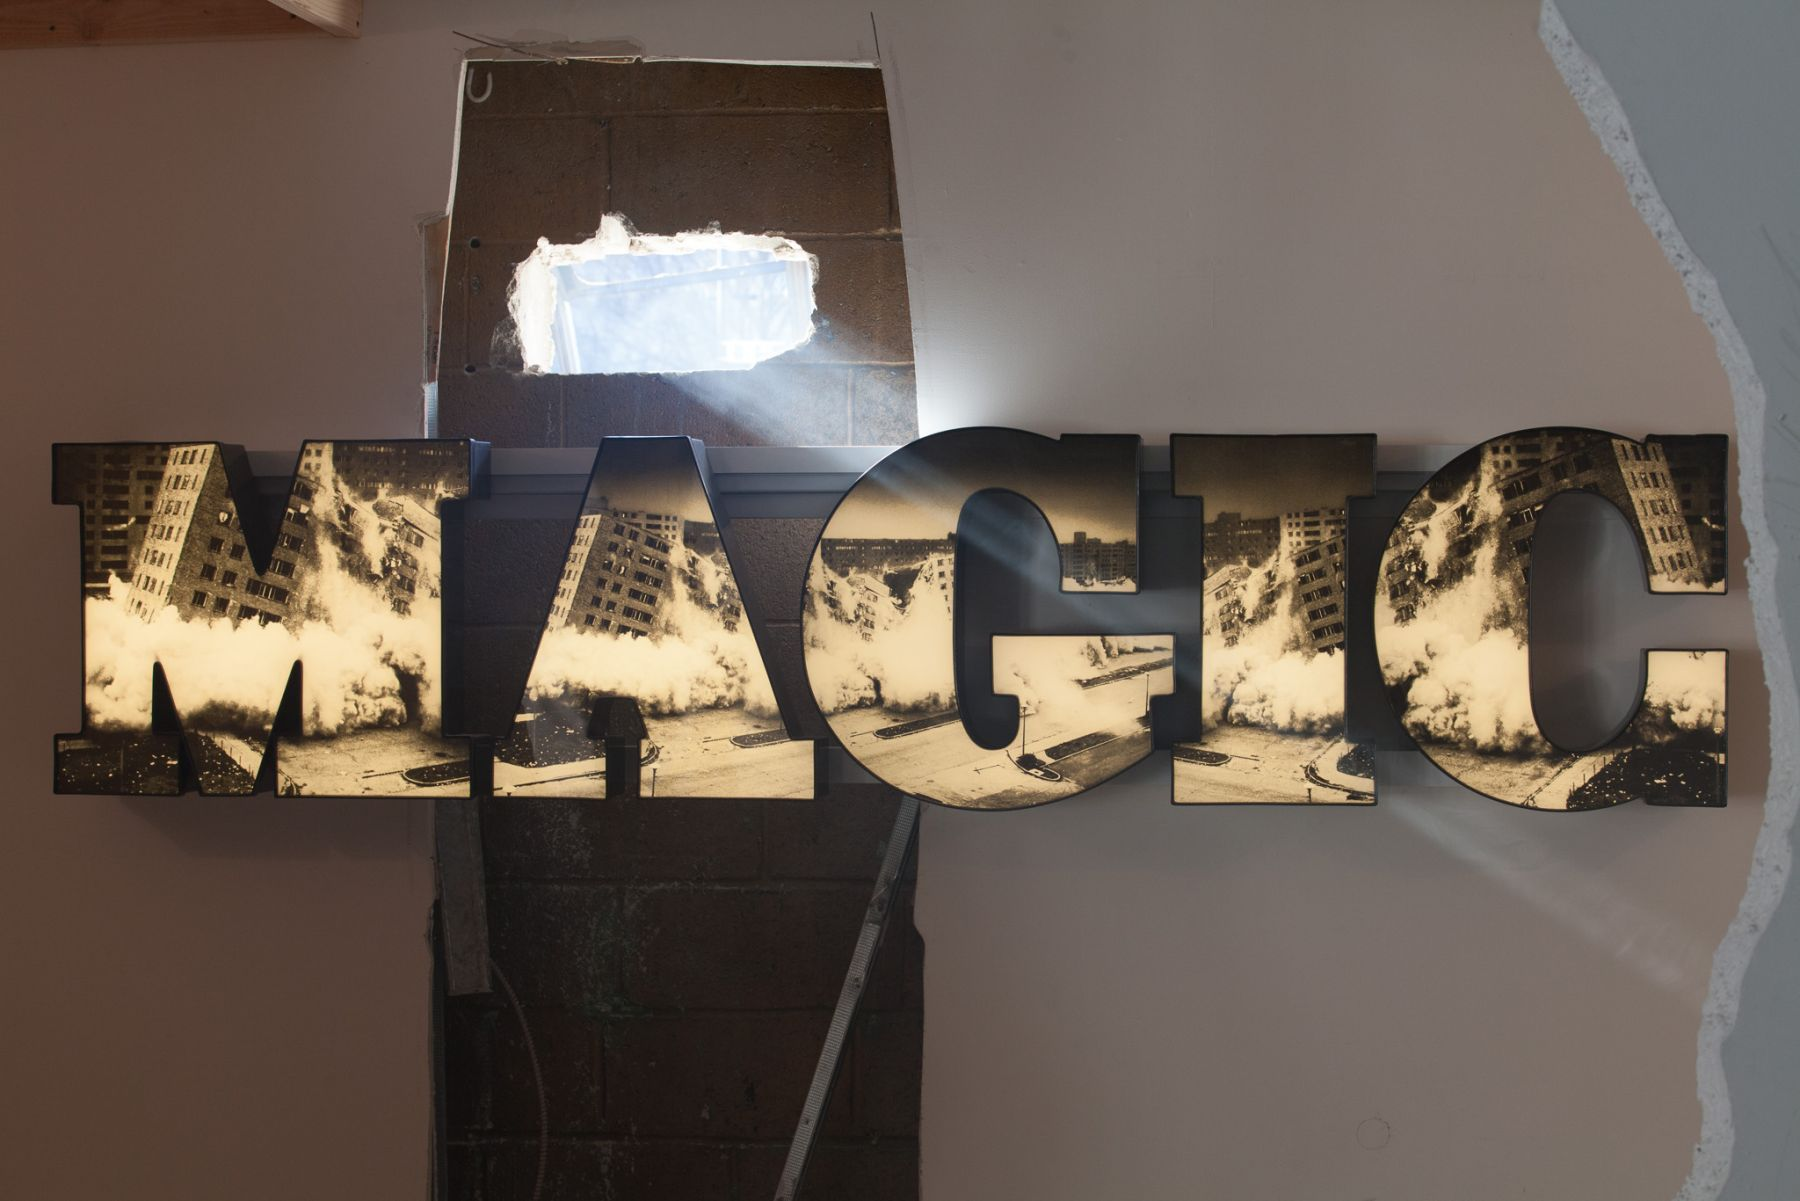 Doug Aitken, Installation view: 100 YRS (part 2), 2013, 303 Gallery